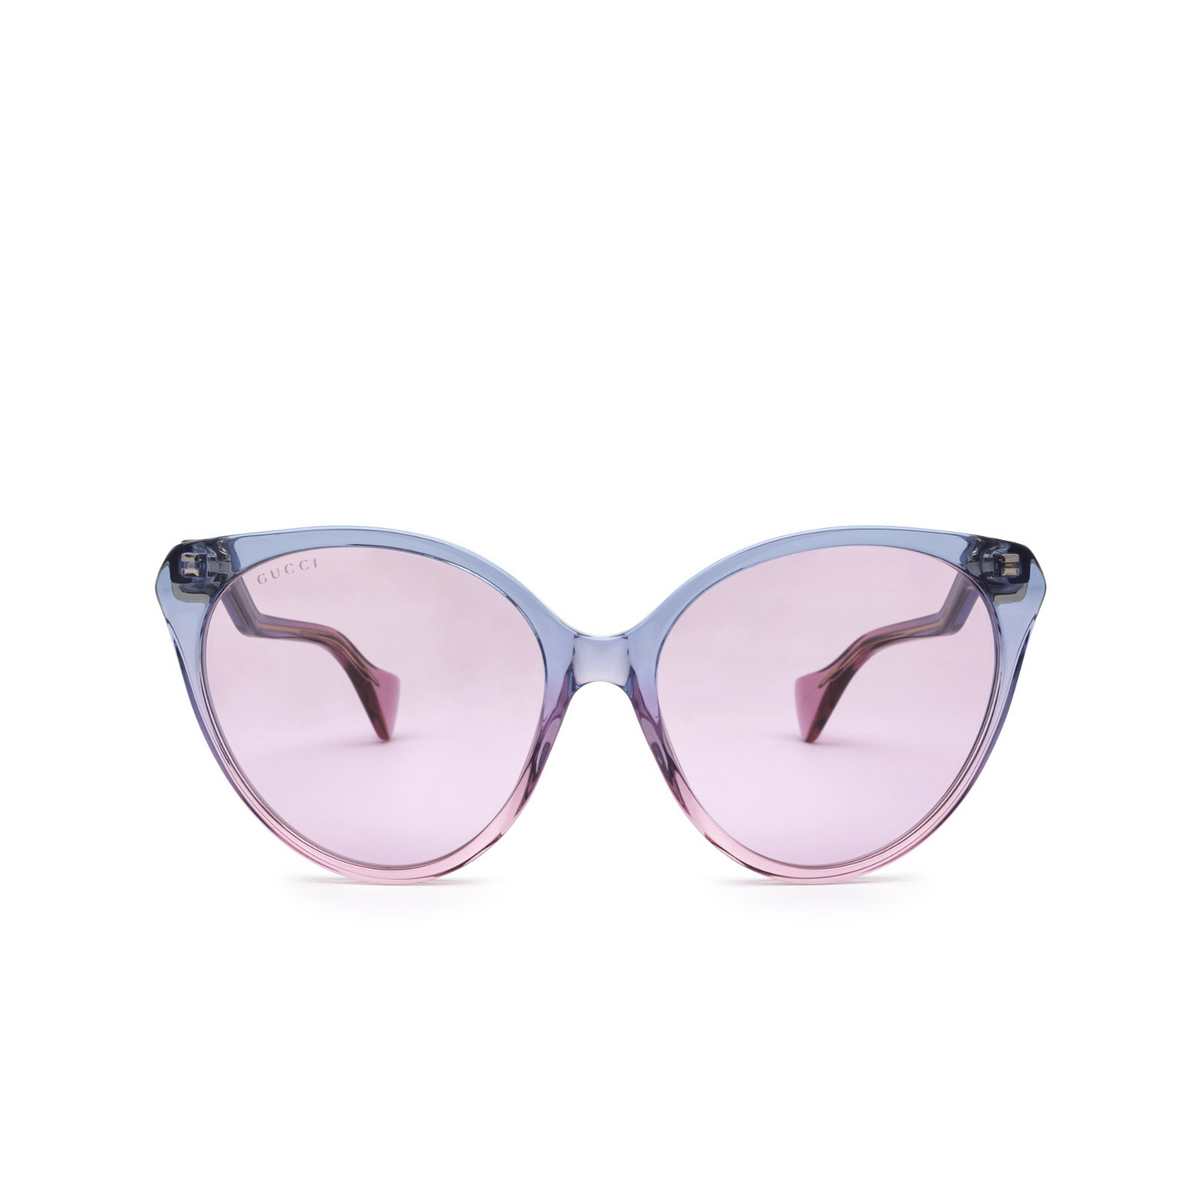 Gucci® Cat-eye Sunglasses: GG1011S color Blue & Pink 003 - front view.